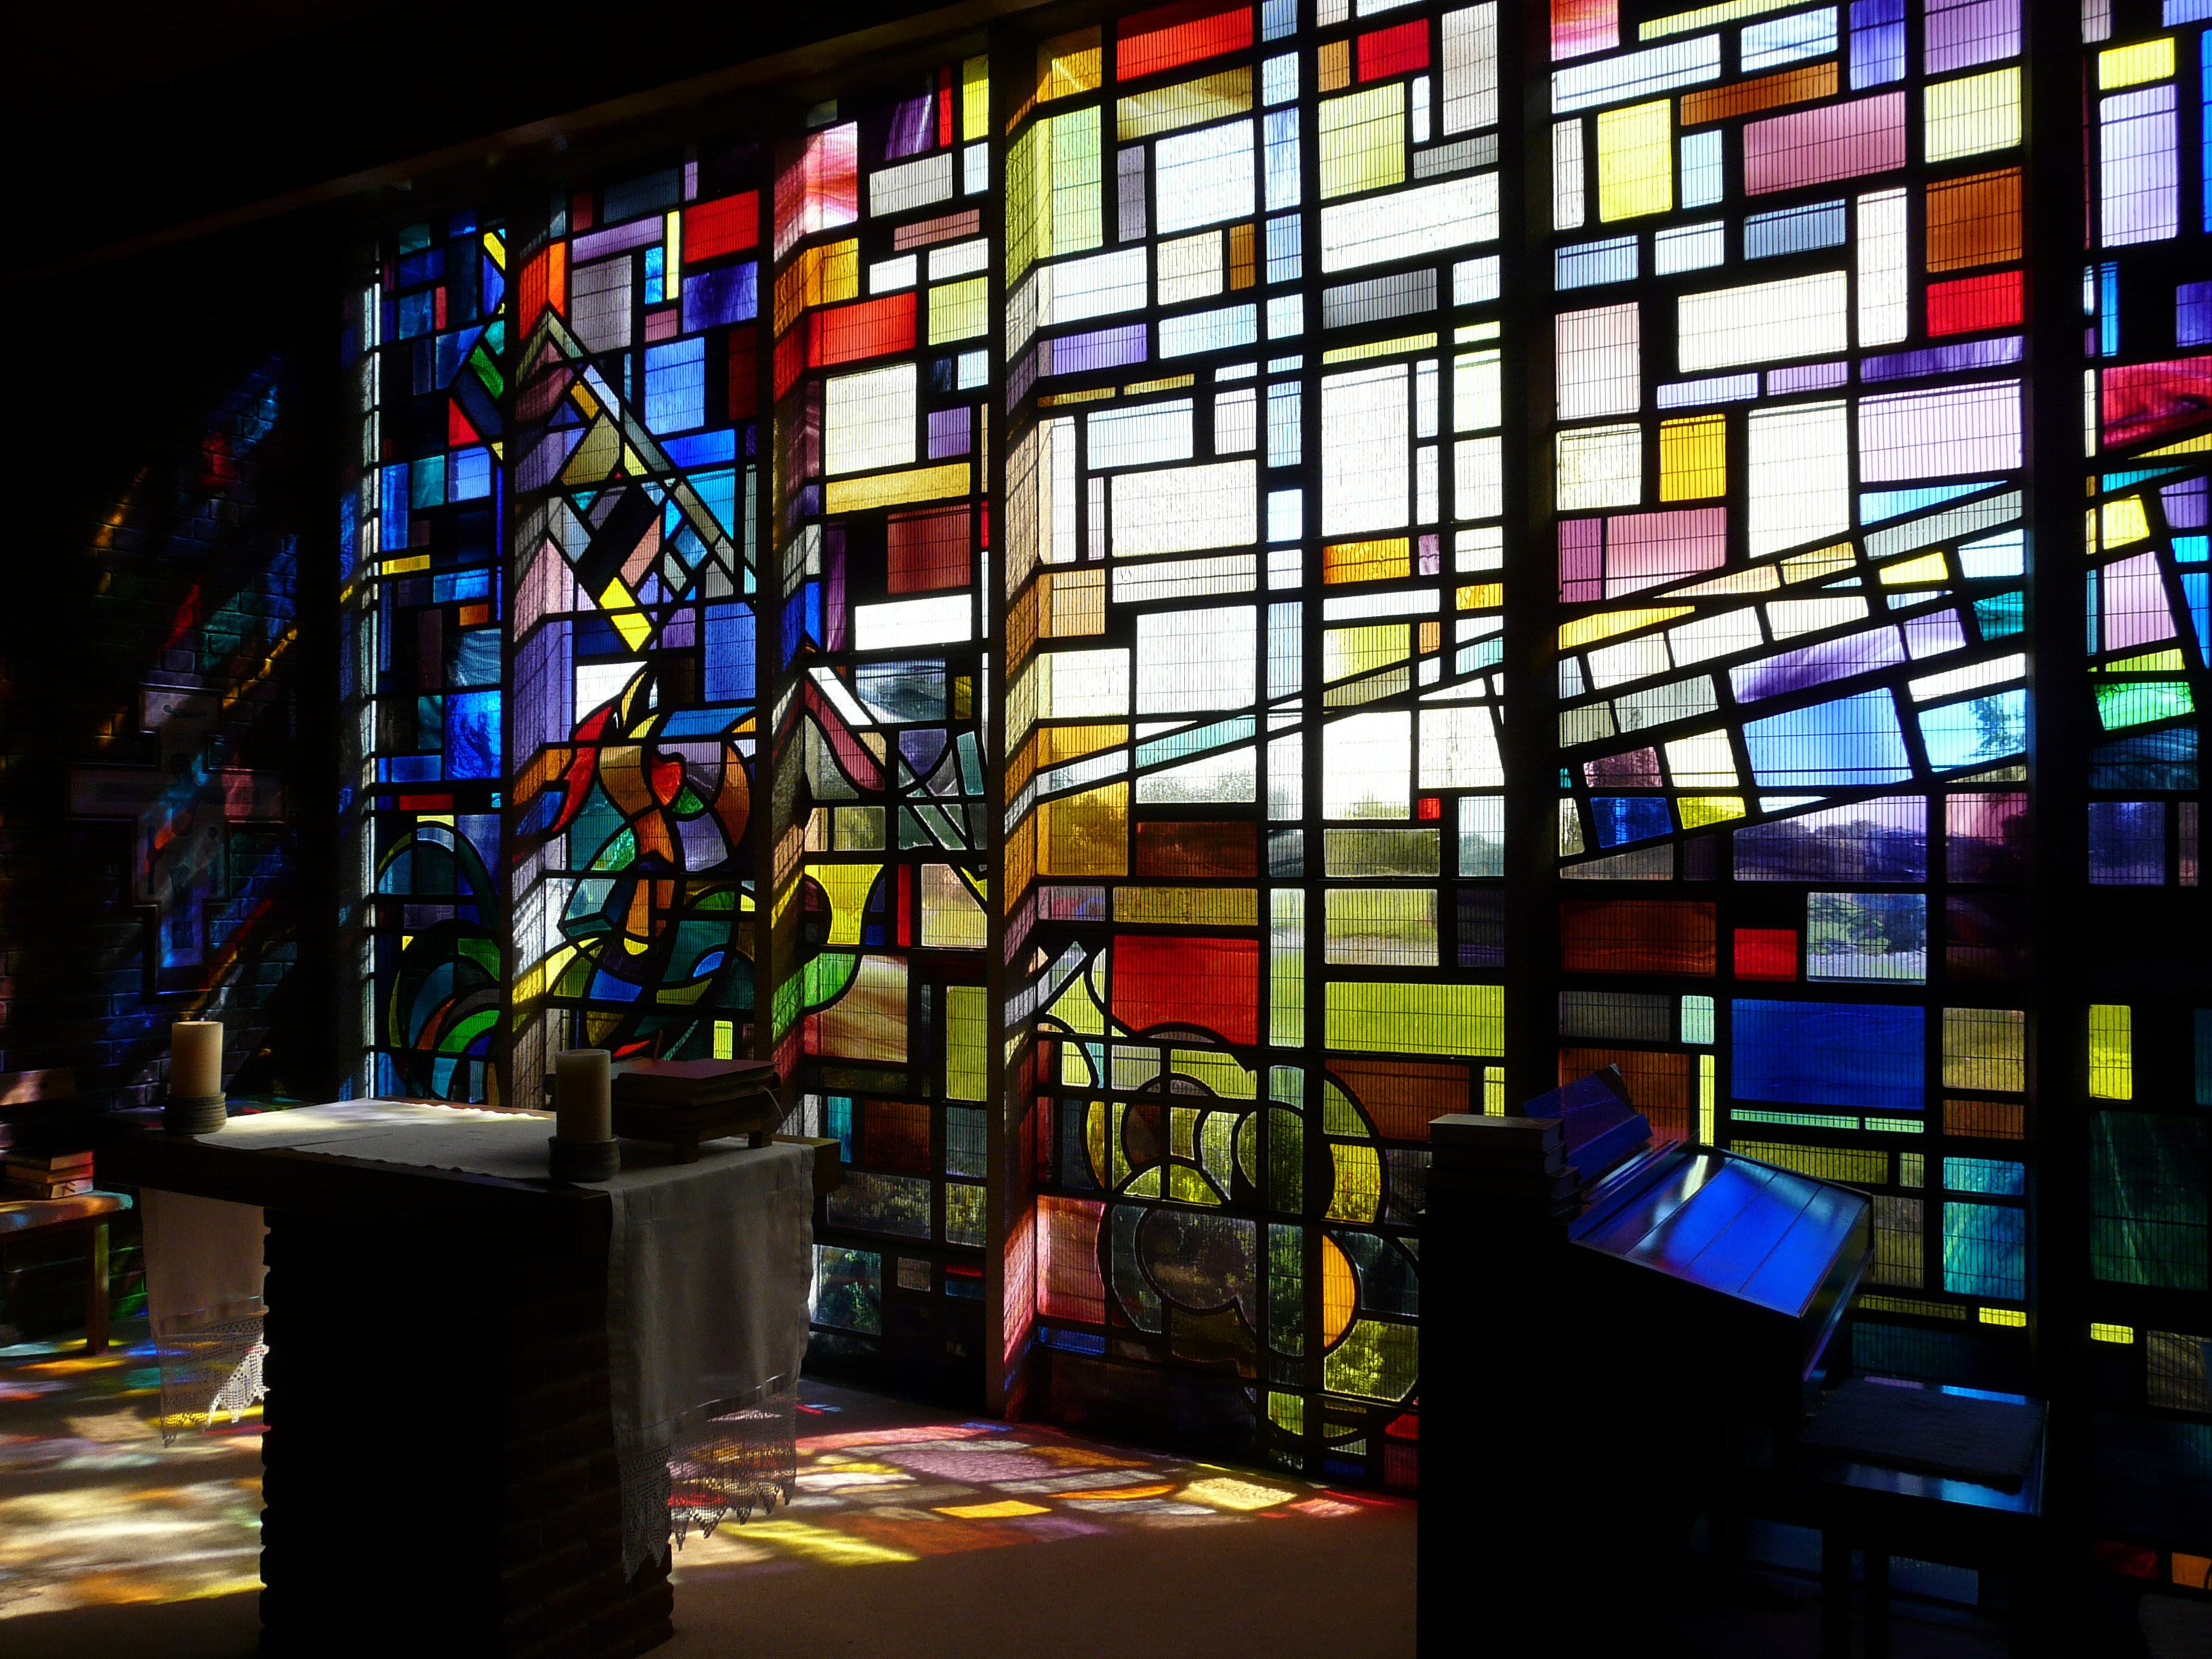 36. Marvel at stained glass